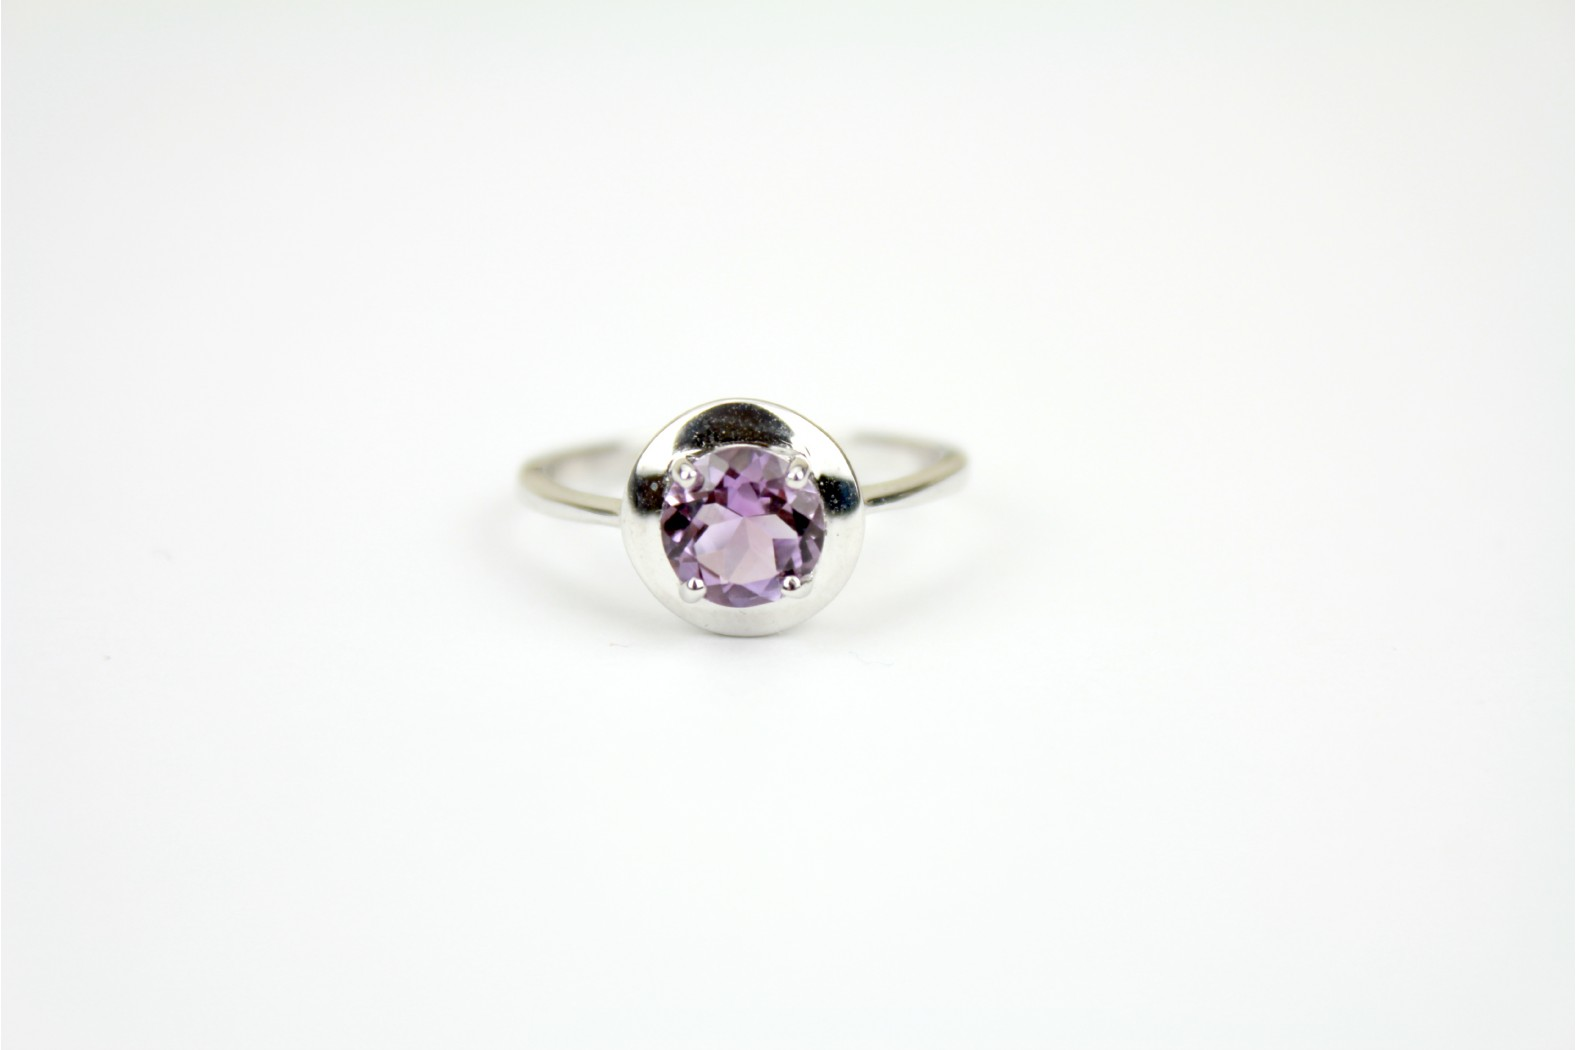 Faceted Amethyst claw set contemporary design on silver size 8 or P